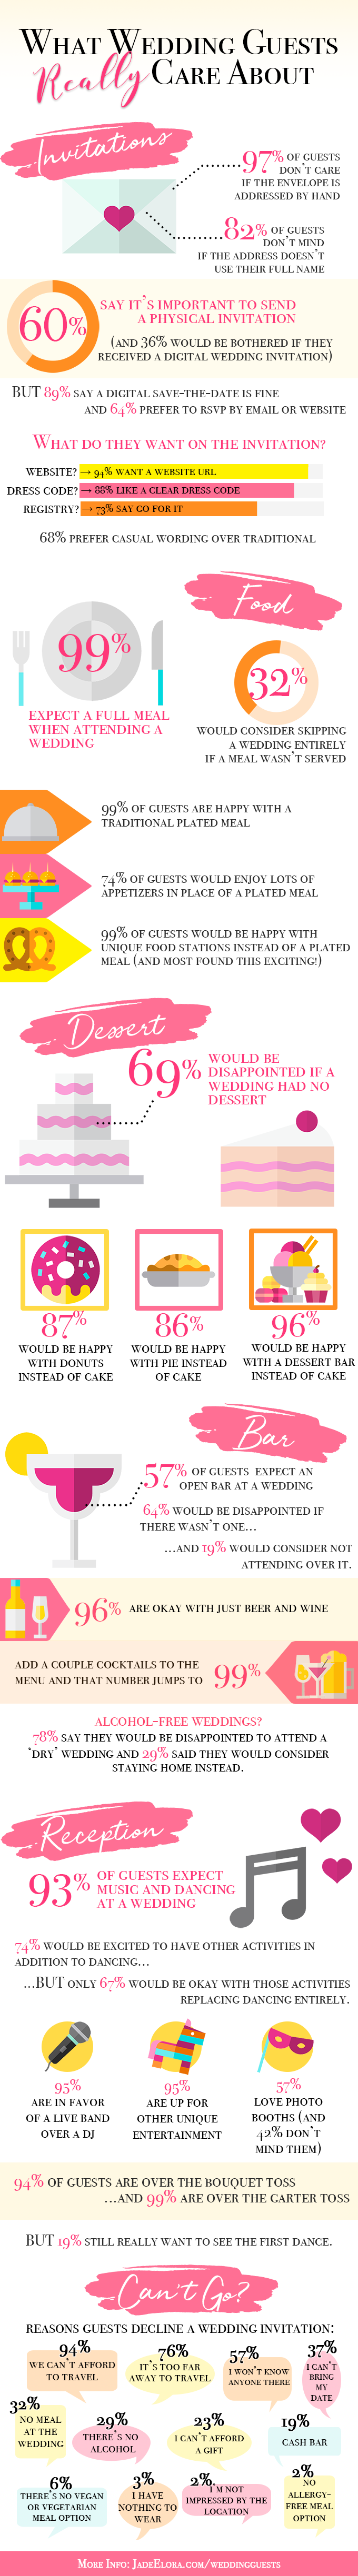 Jade Elora Photography - Wedding Guest Survey Infographic.png